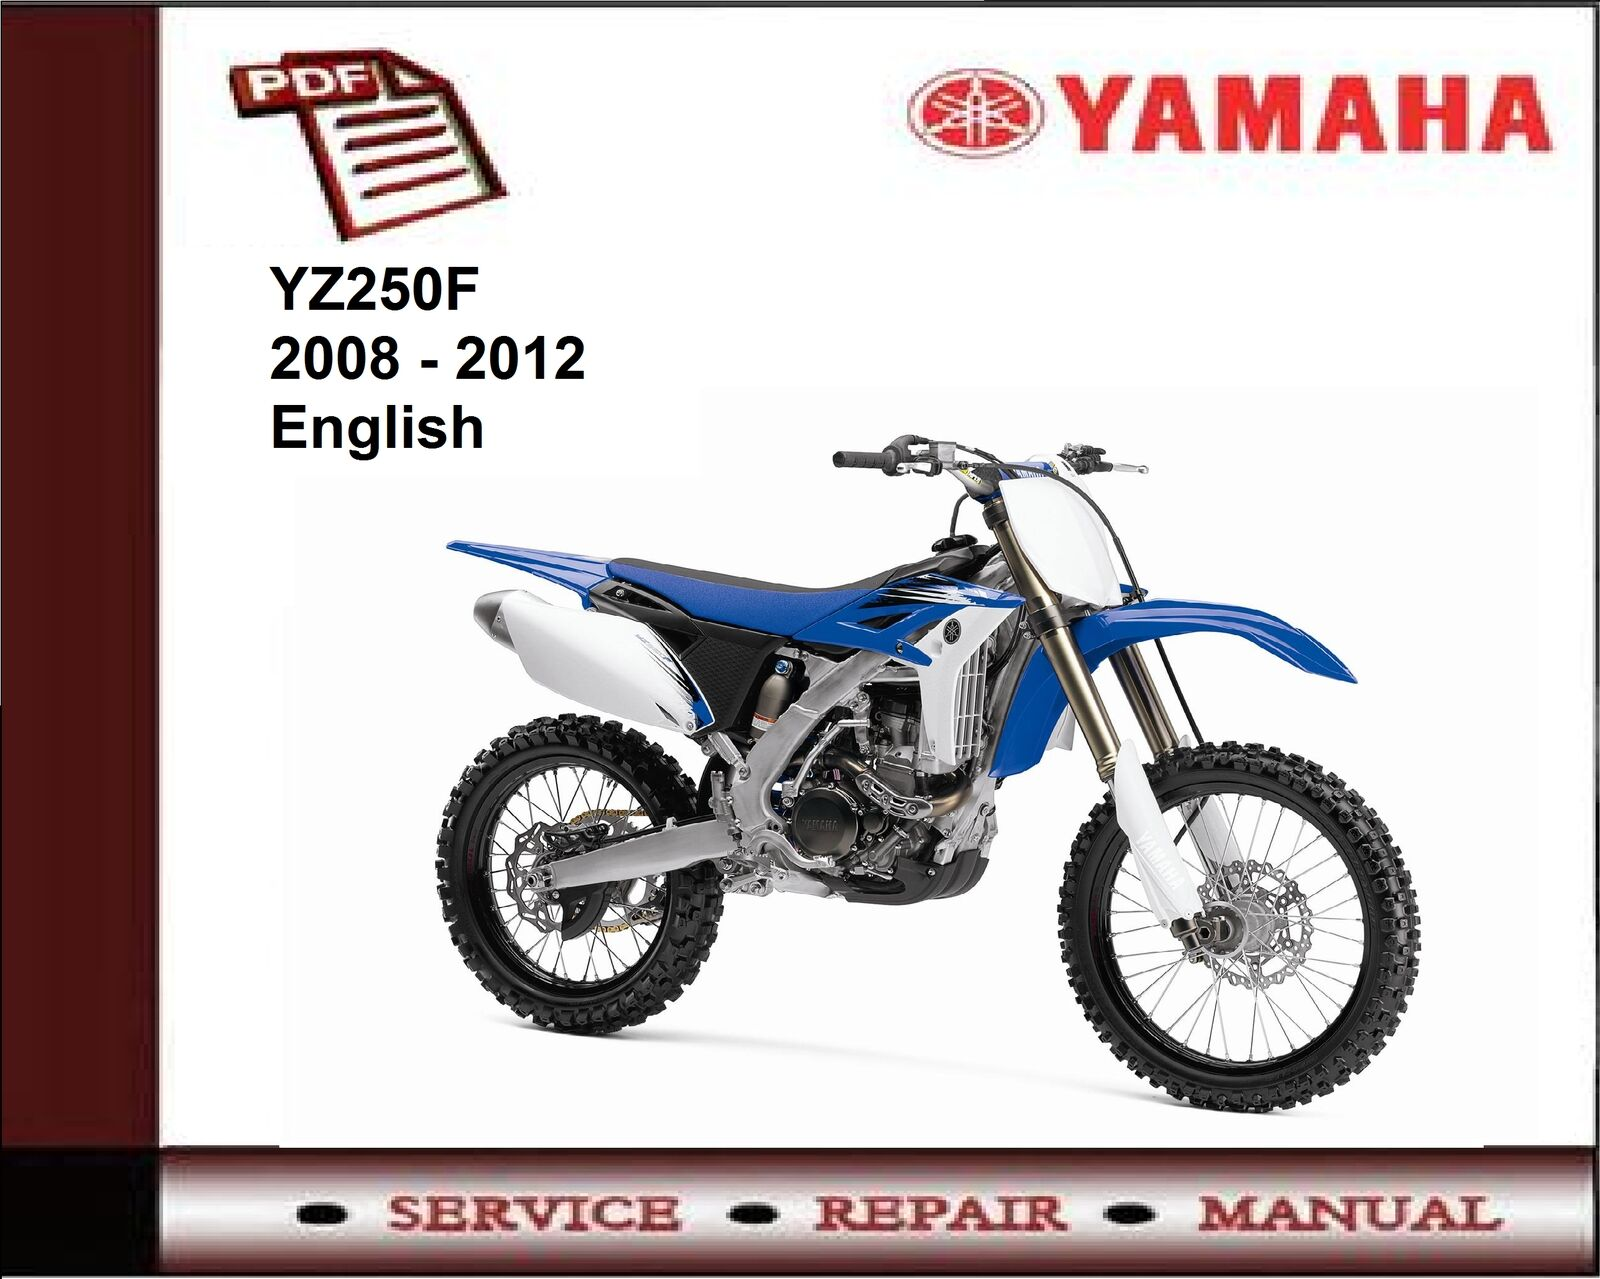 Yamaha YZ250F YZ250 F 2008 - 2012 Workshop Service Repair Manual 1 of 1FREE  Shipping ...